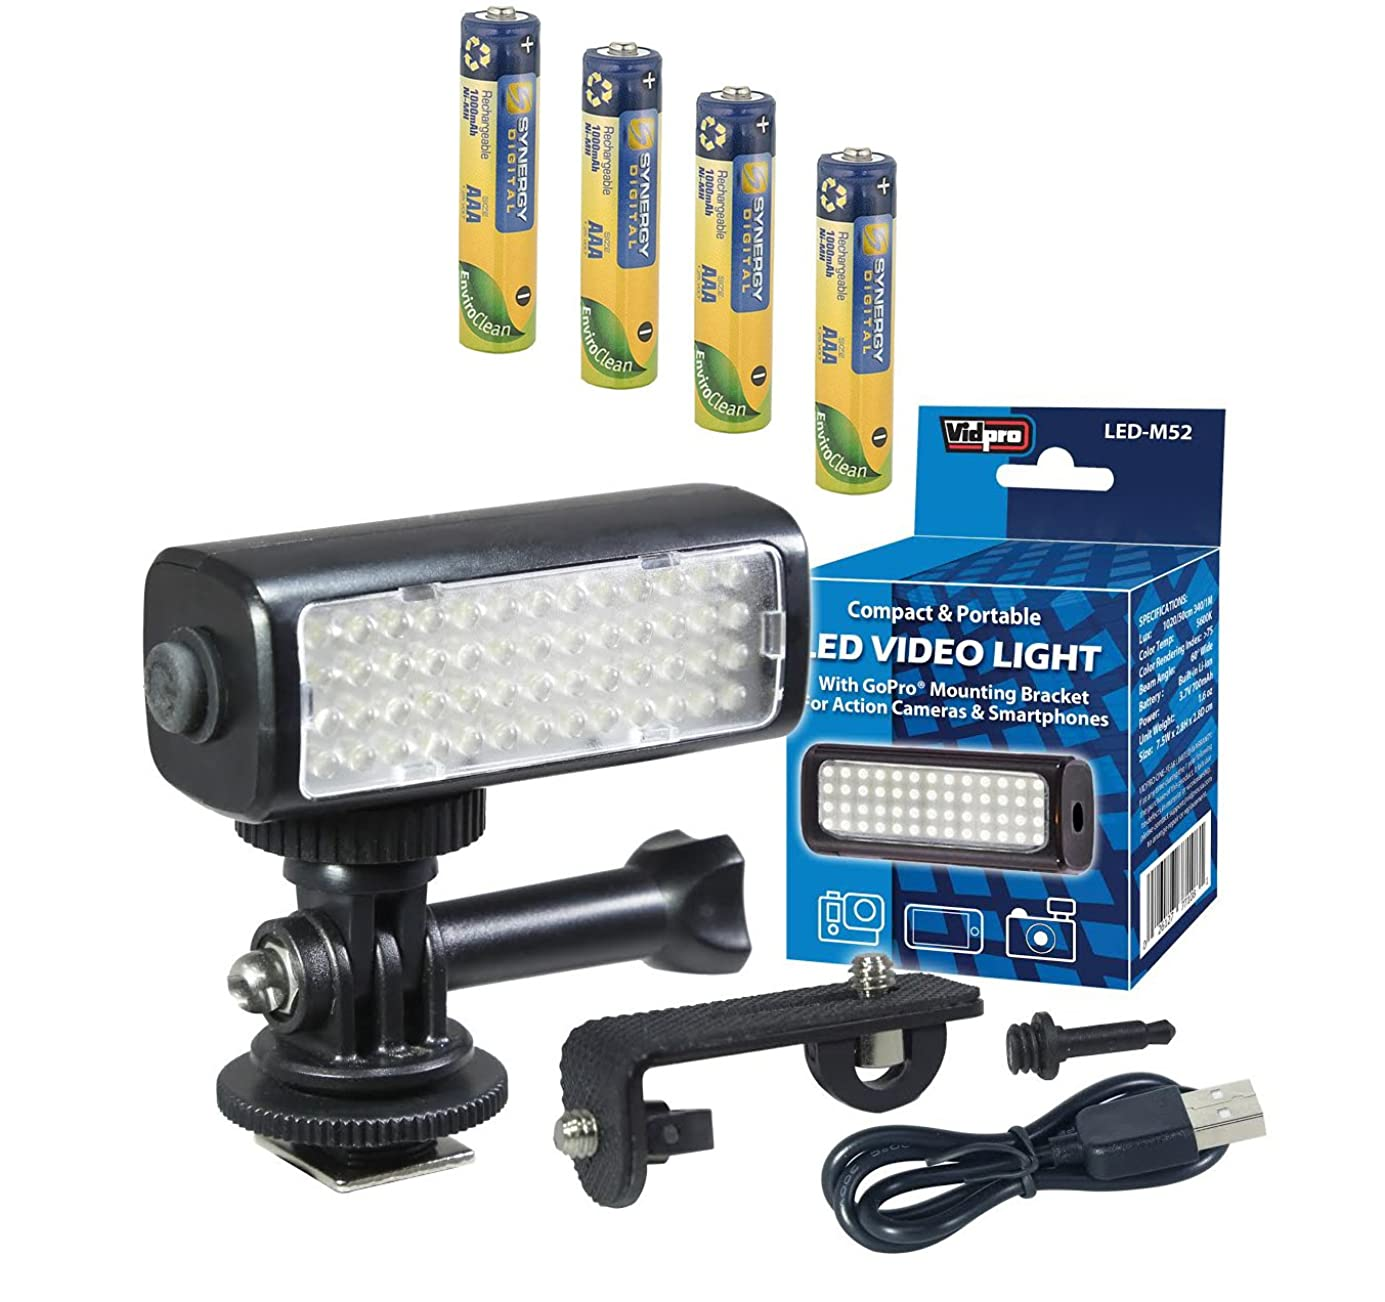 Zoom Q8 Handy Video Recorder Camcorder Lighting LED-M52 Mini LED Light for Action Cameras, Camcorders and Phones - Plus a Free Pack of 4 AAA NiMH Rechargable Batteries - 1000mAh fogllt6518